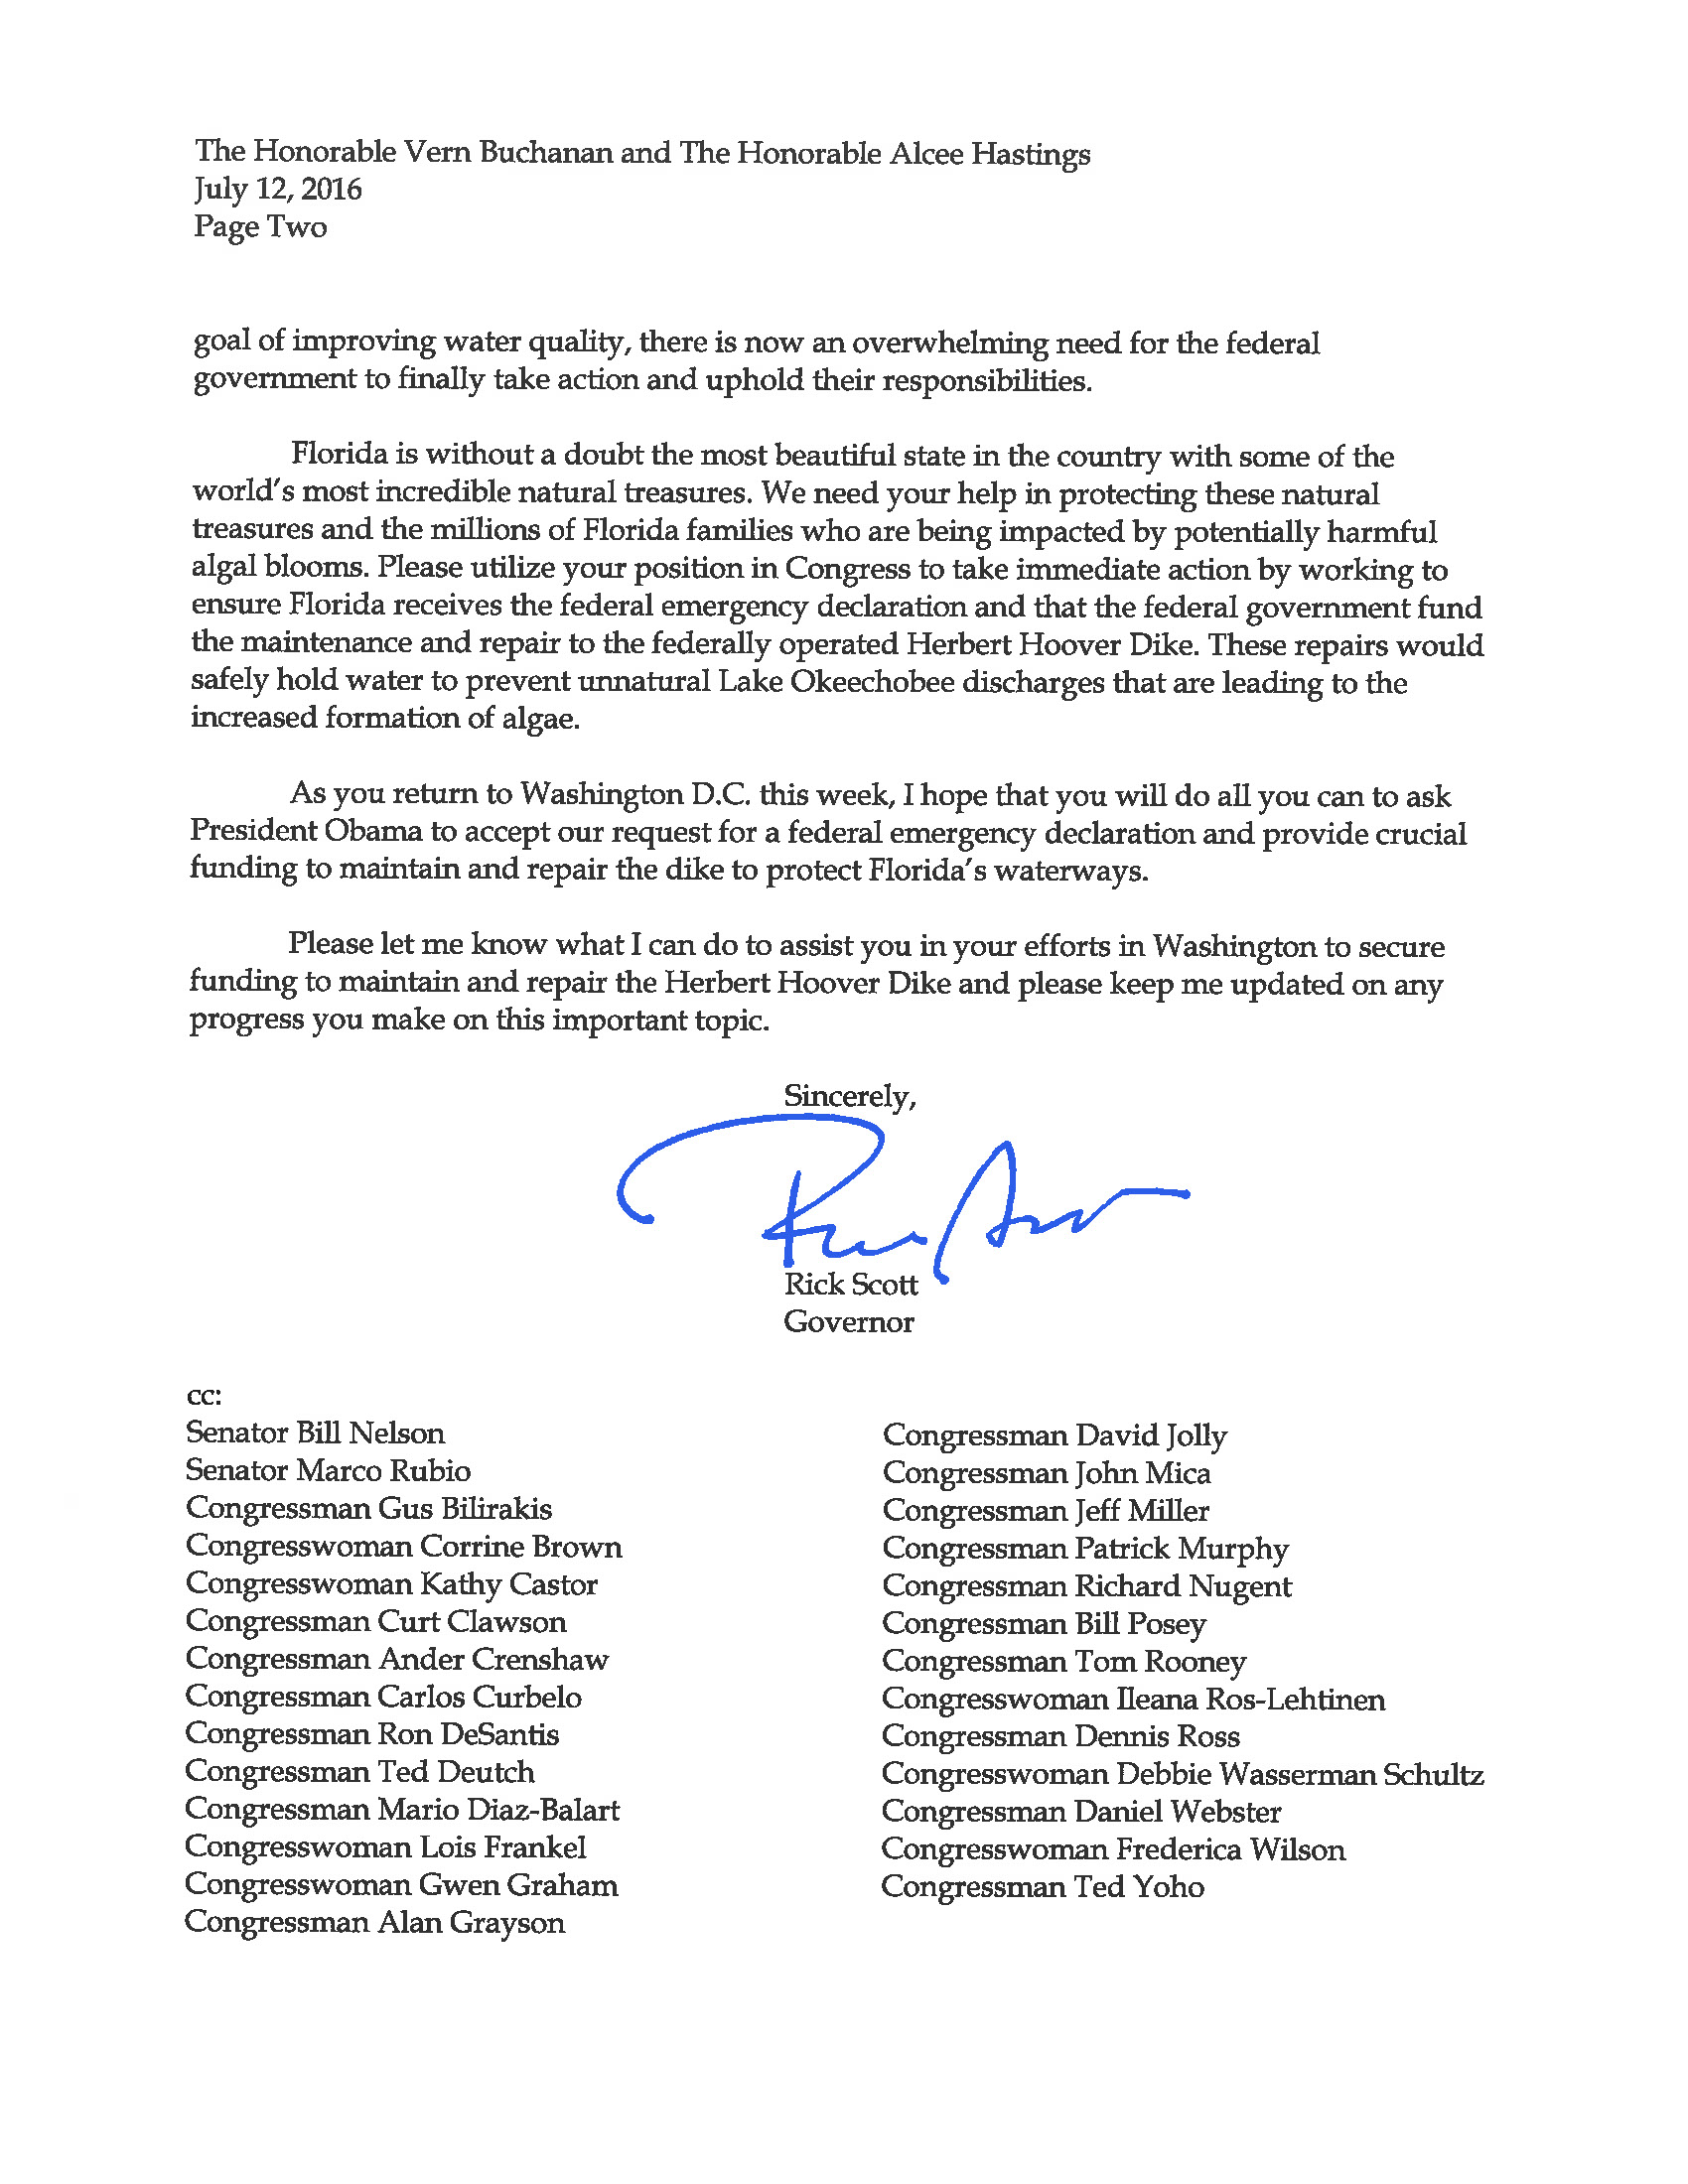 Gov. Scott Letter to Congressional Delegation_Page_2